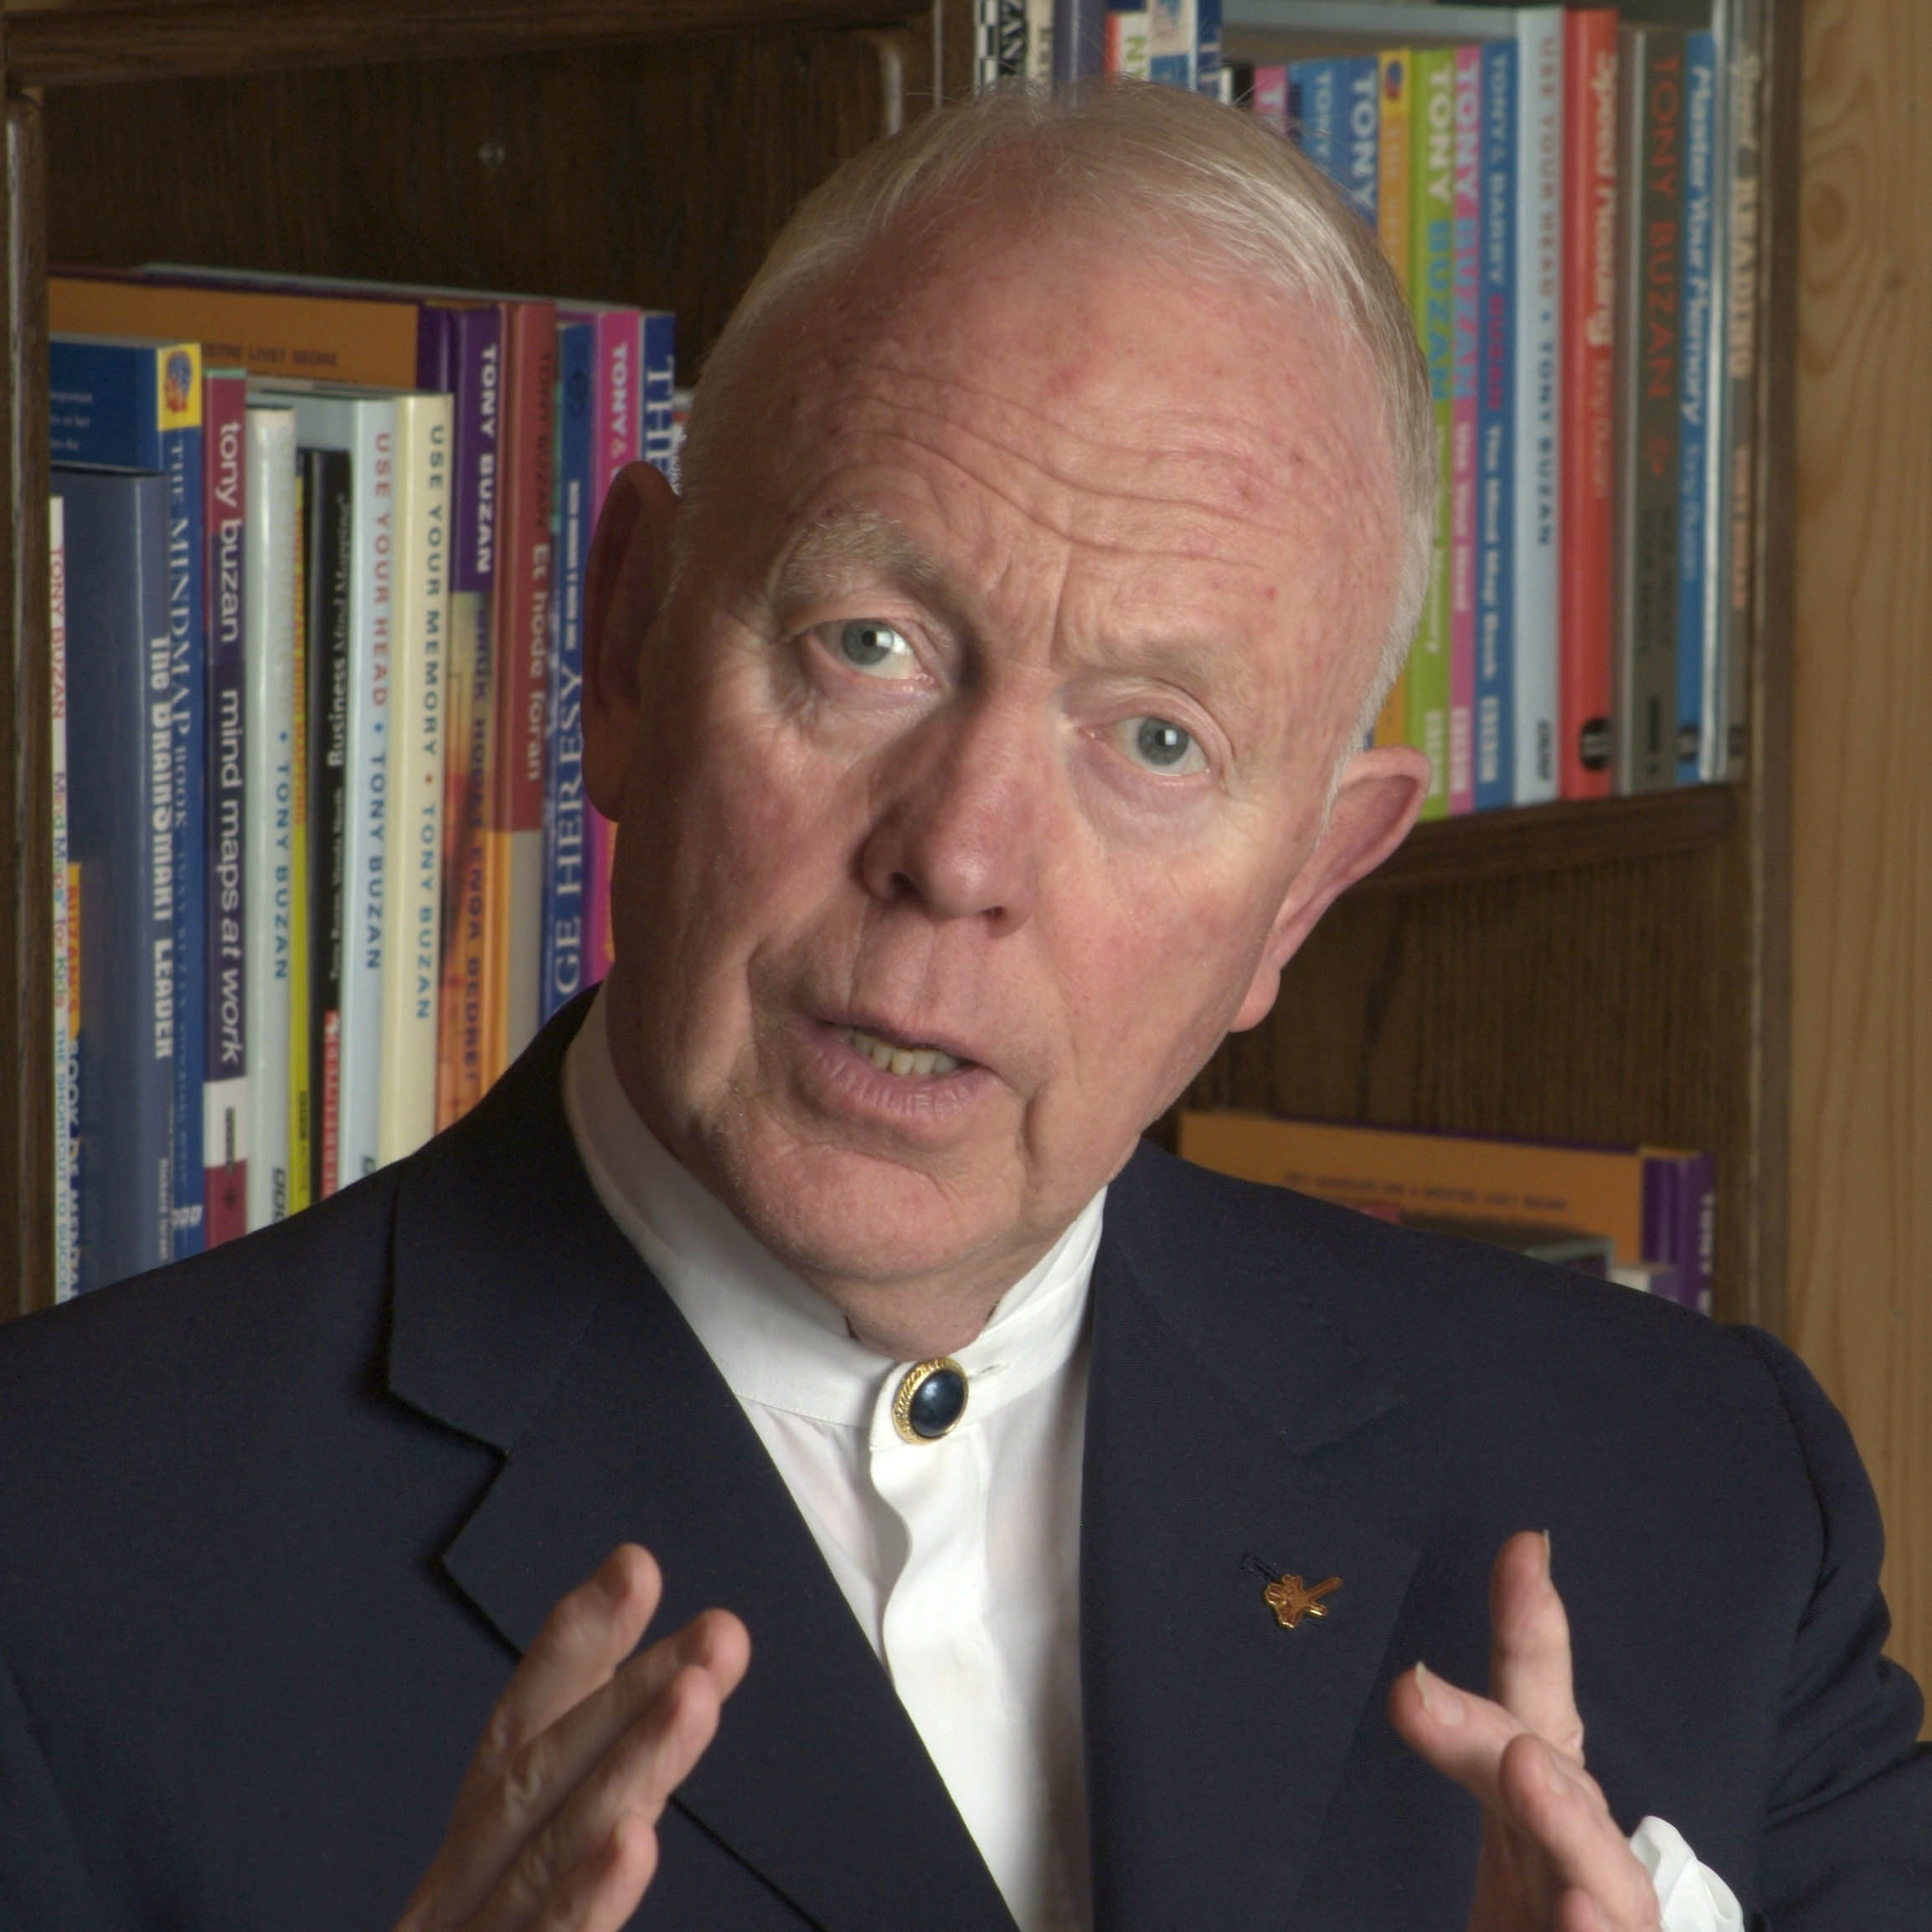 Tony Buzan, creator of Mind Maps, will open Learning Technologies Asia on 7 November